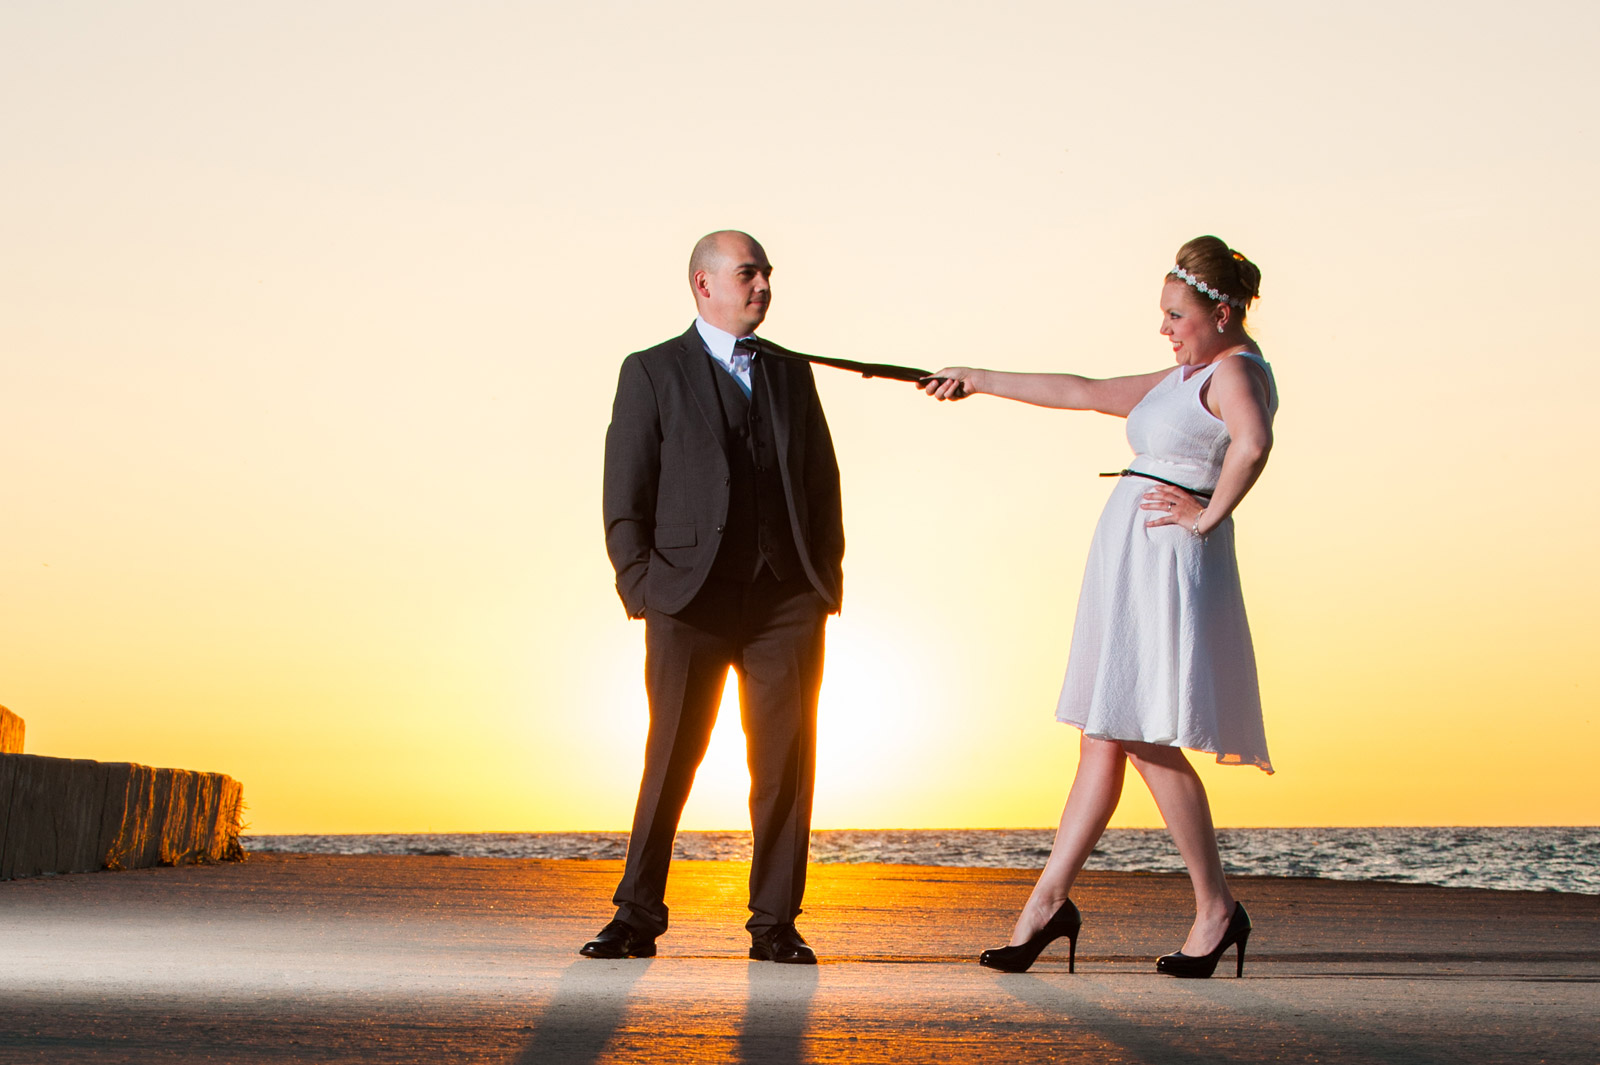 Funny enagegement session photo of bride pulling groom by his tie at sunrise along Chicago's Lake Michigan